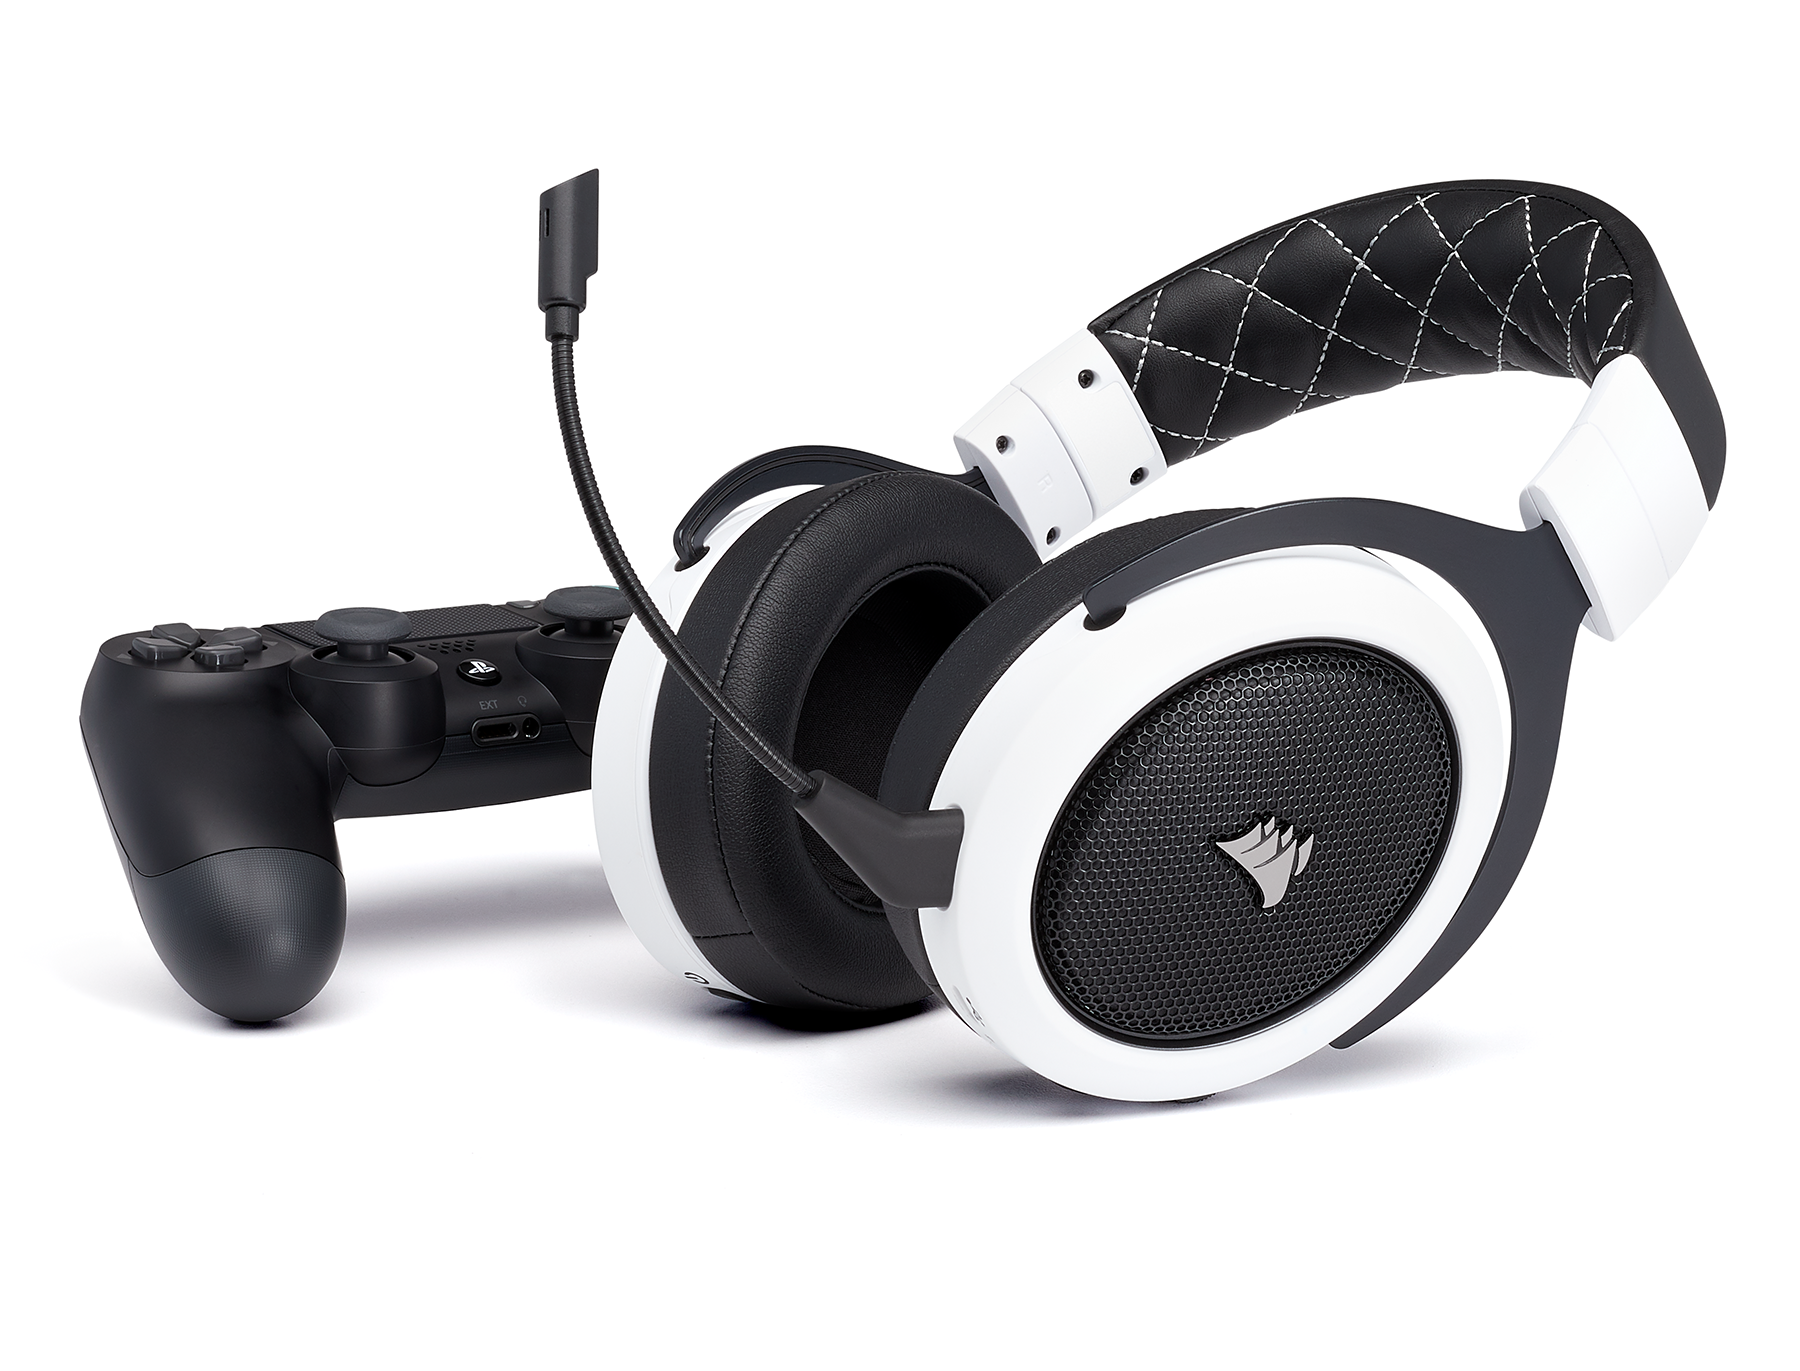 slide 6 of 10,show larger image, produktbillede